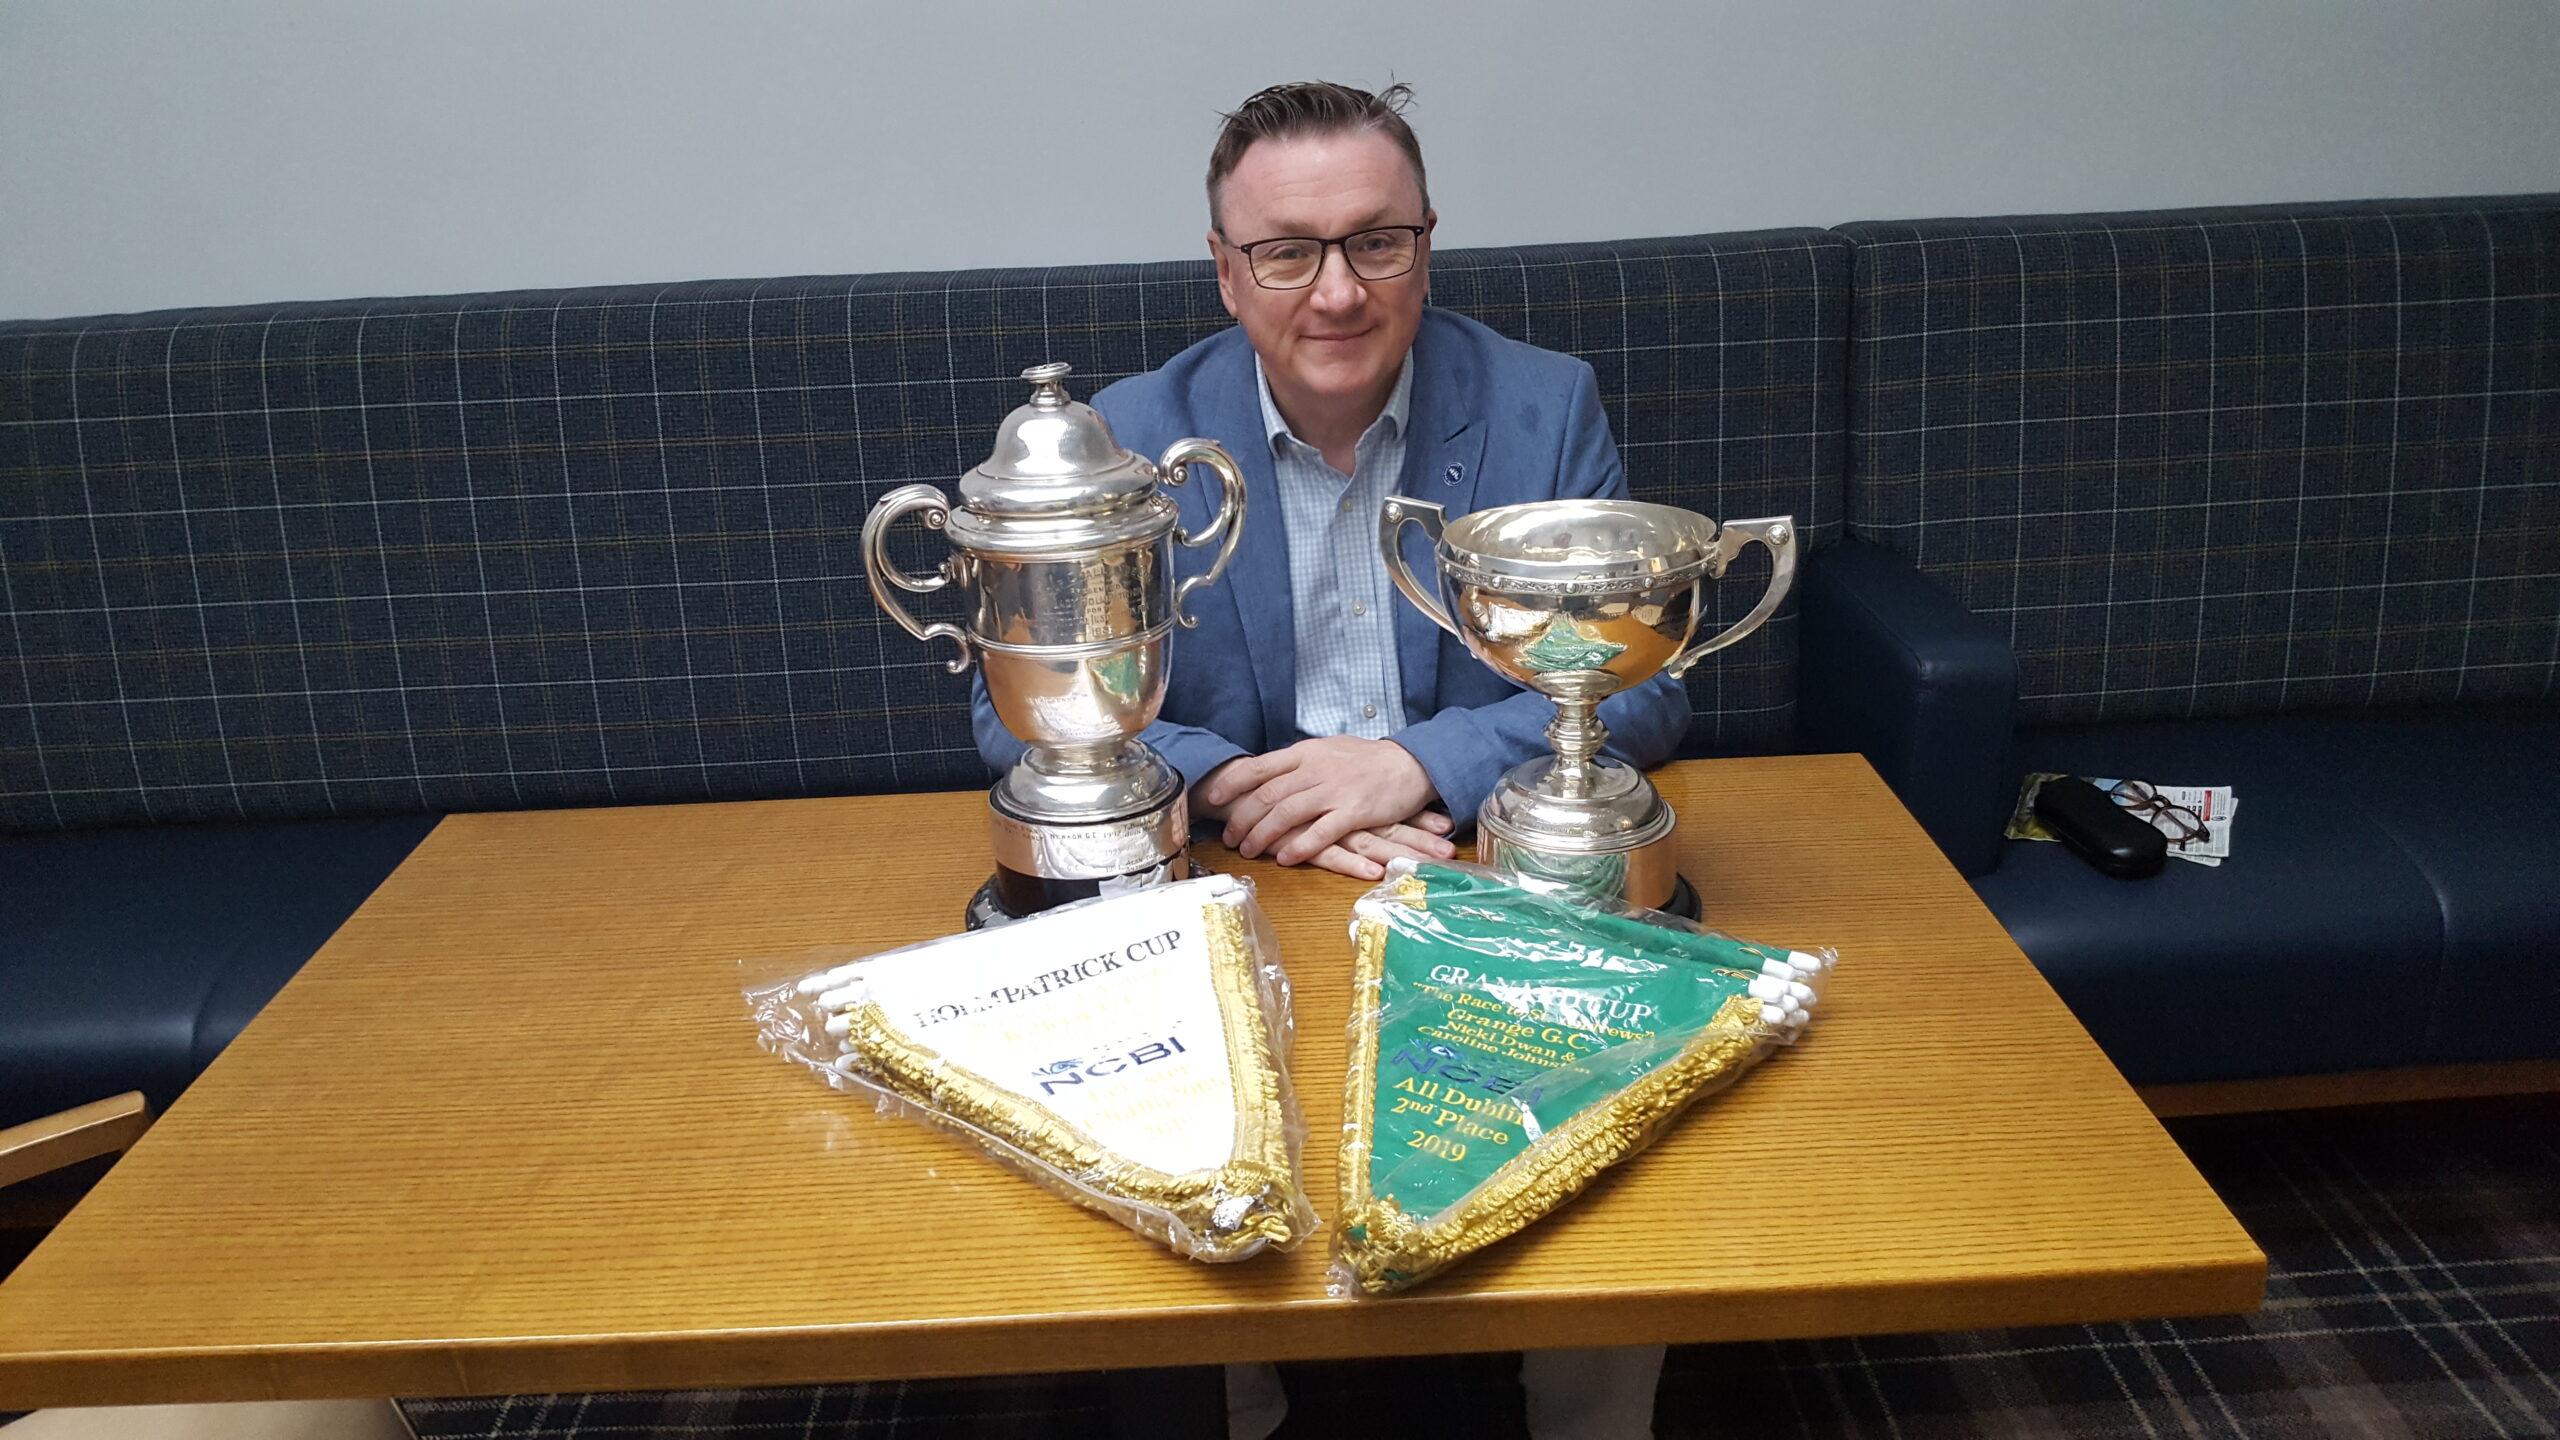 Ceo Chris White and the two Golf Cups